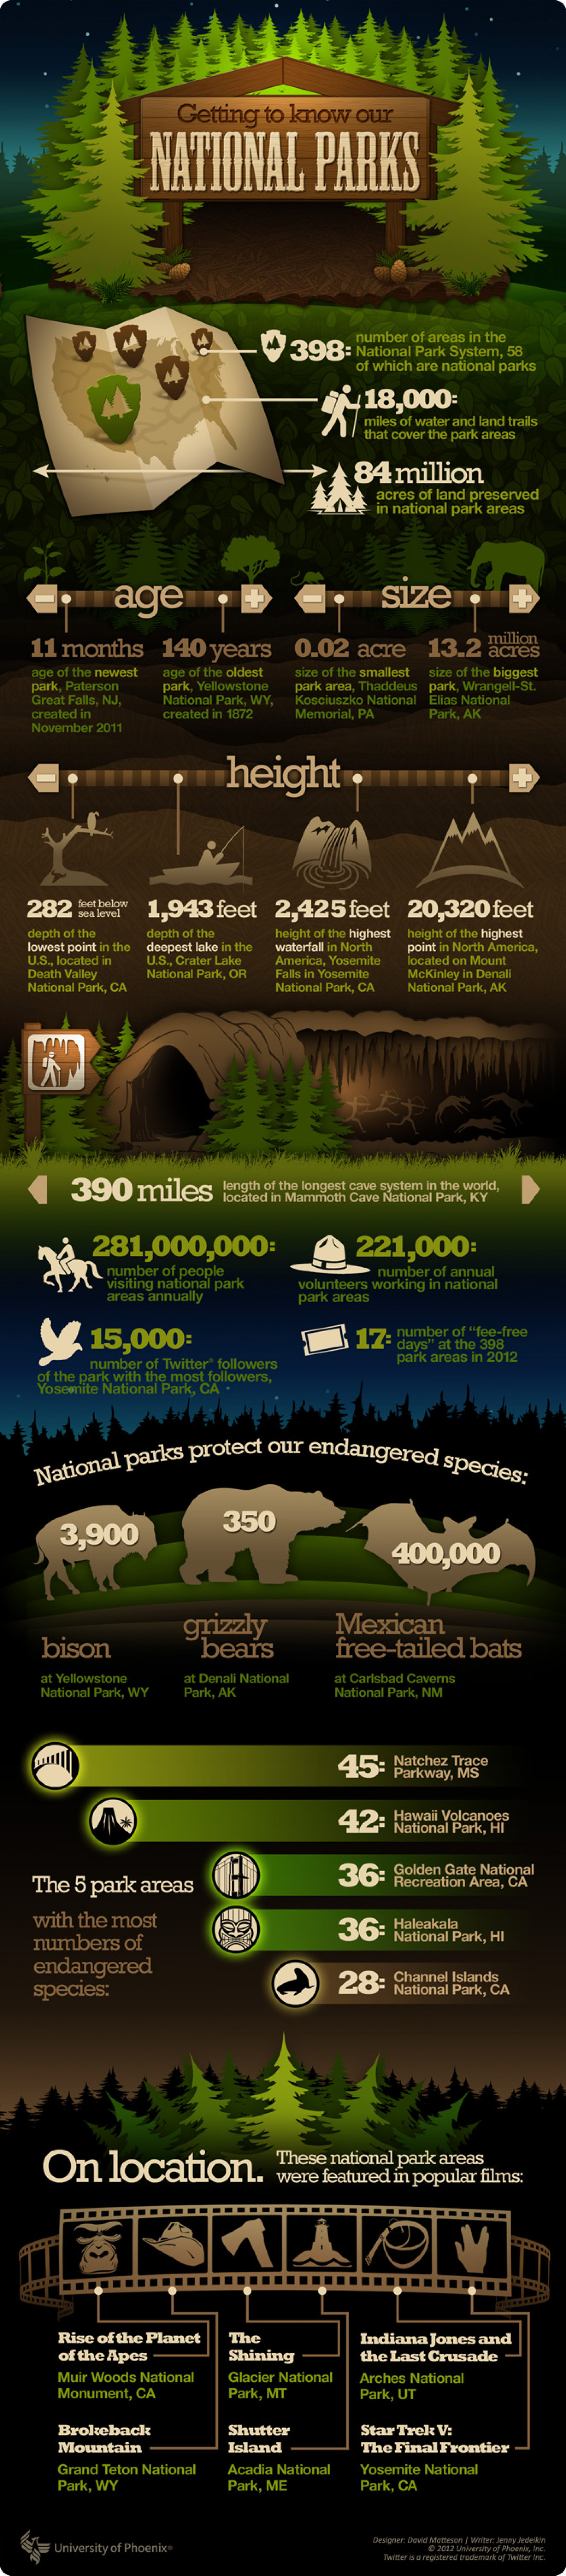 Getting to know our National Parks Infographic